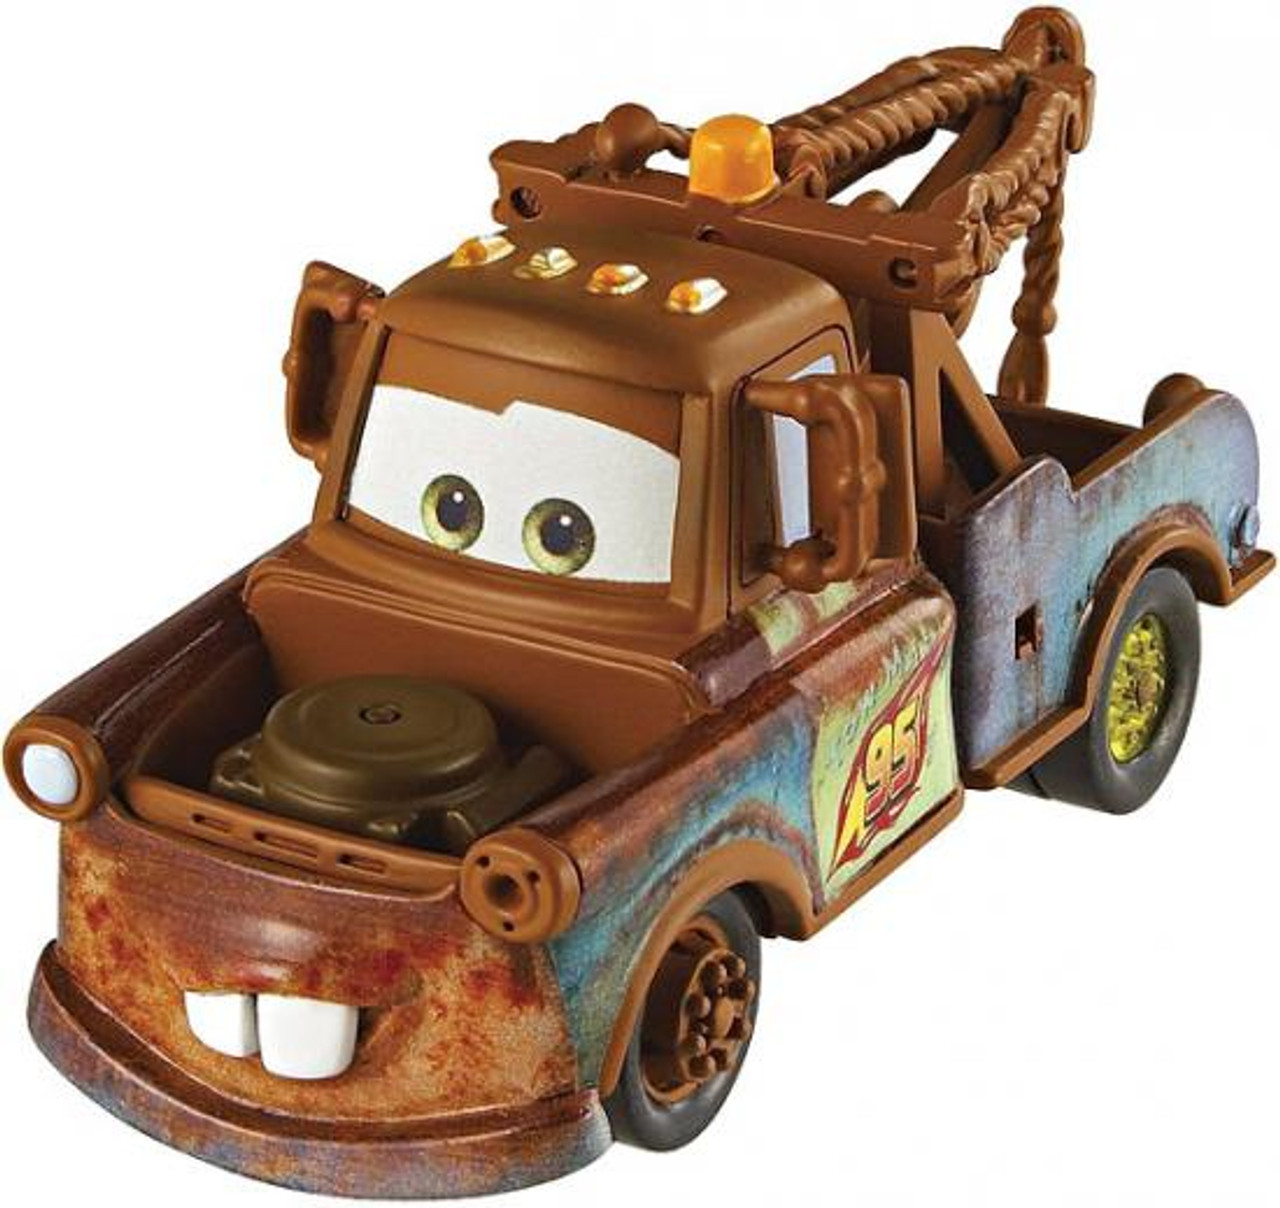 Disney Cars Cars 2 Loose Race Team Mater Diecast Car [Loose]